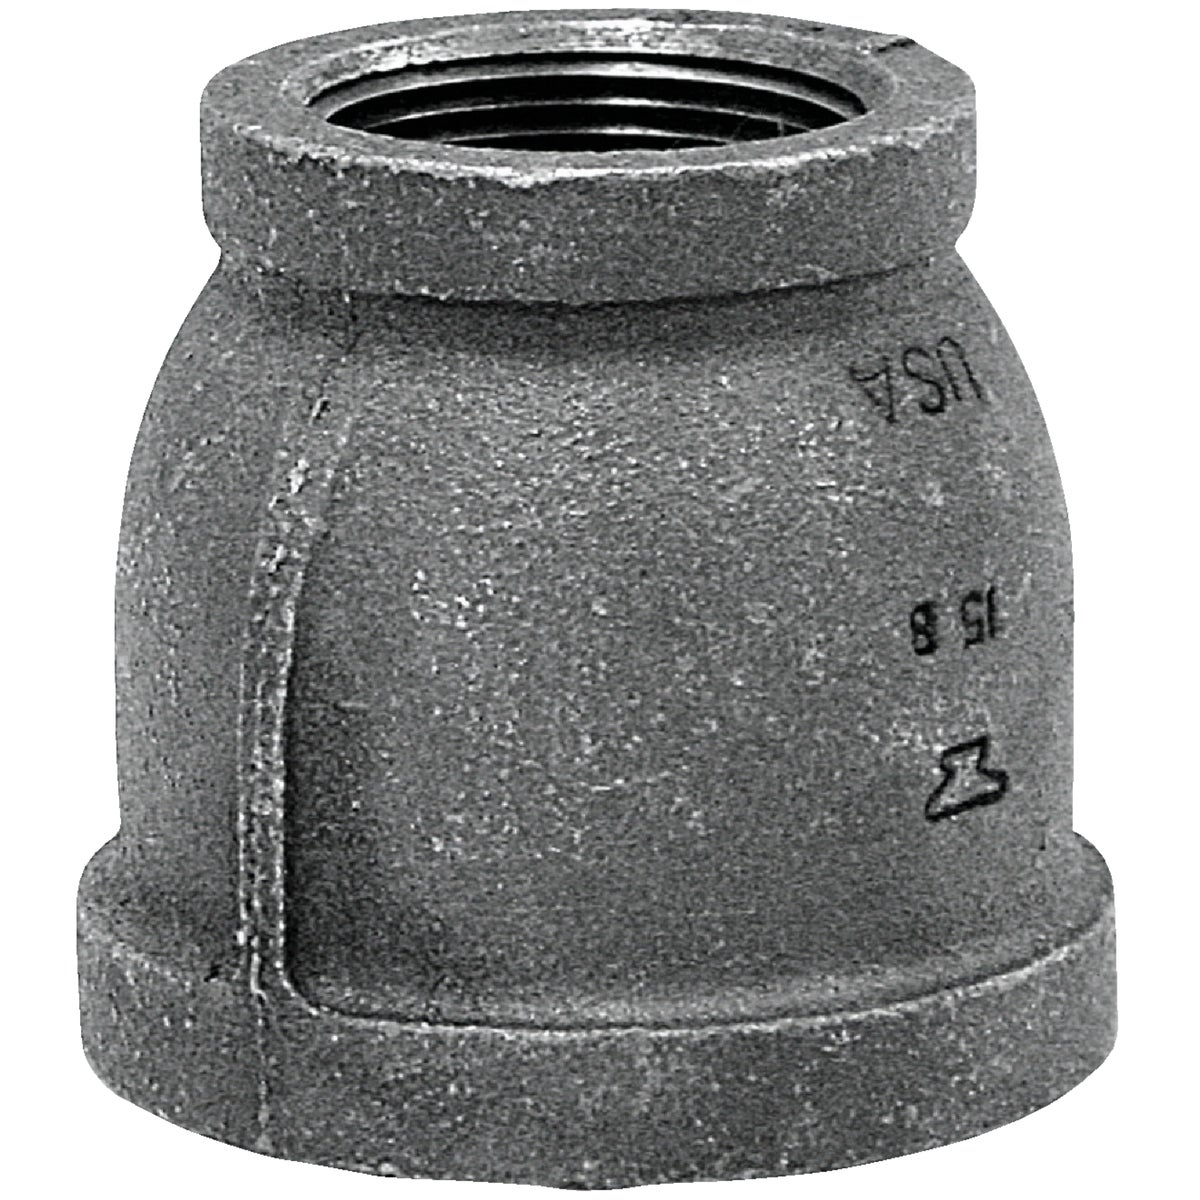 2X1-1/2 BLK COUPLING